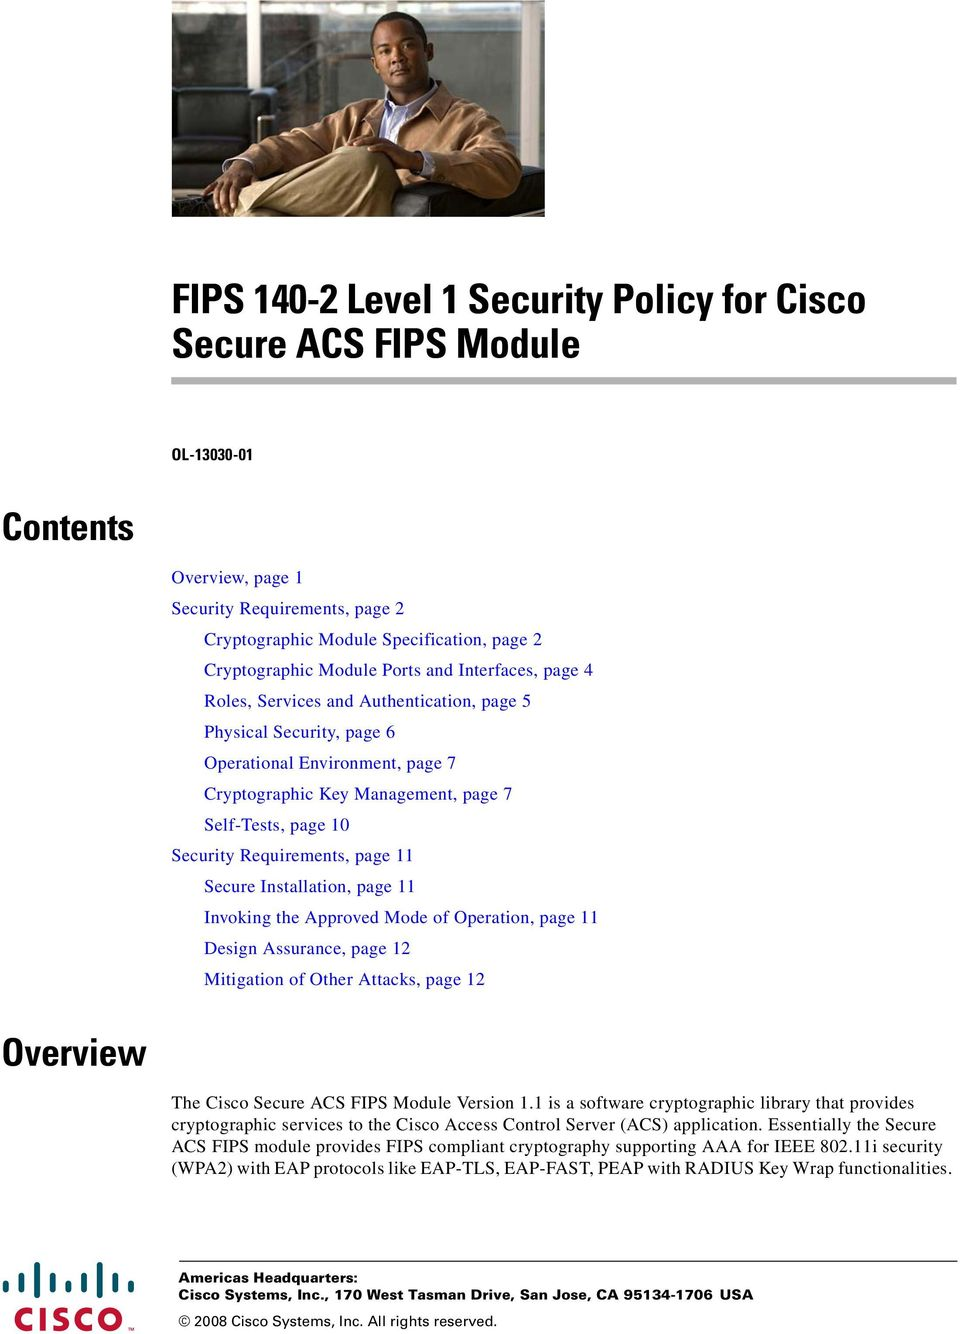 page 11 Secure Installation, page 11 Invoking the Approved Mode of Operation, page 11 Design Assurance, page 12 Mitigation of Other Attacks, page 12 Overview The Cisco Secure ACS FIPS Module Version